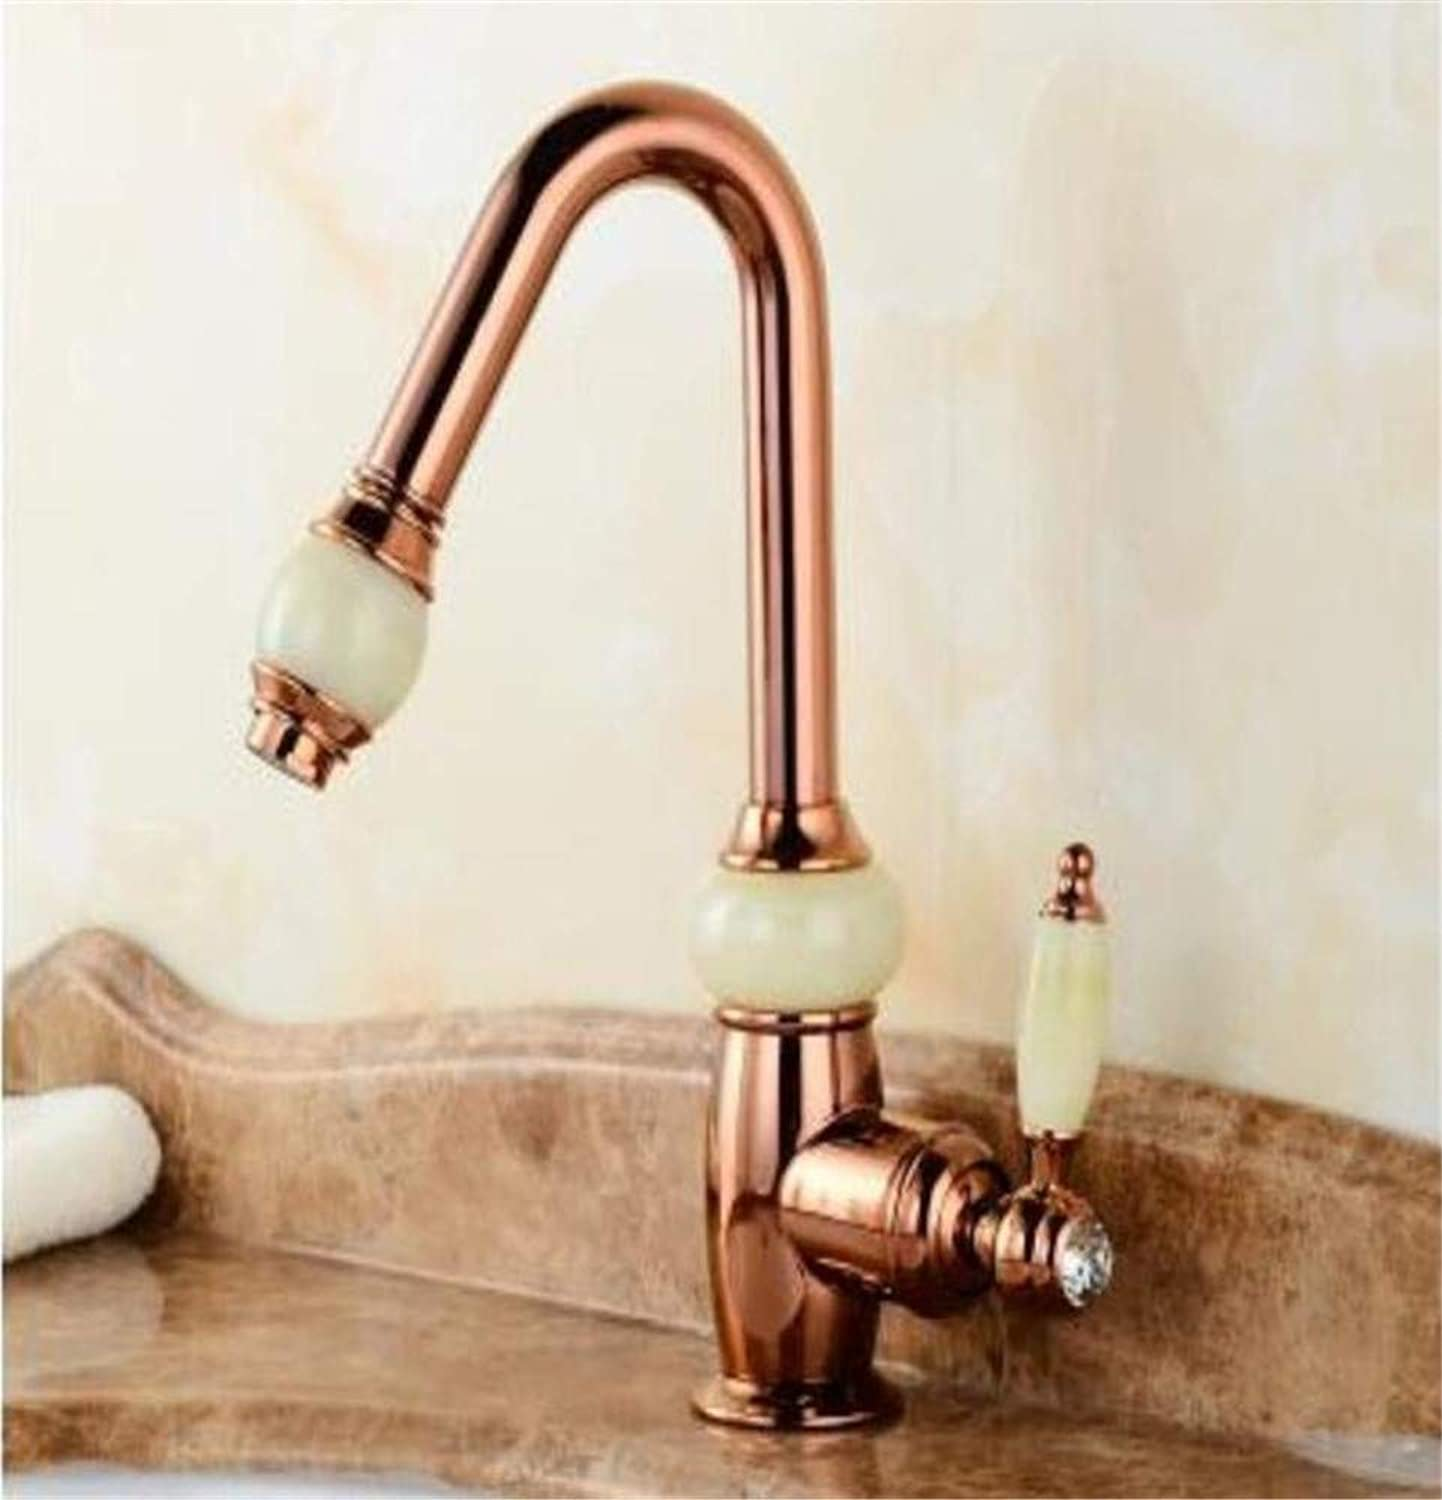 360° redating Faucet Retro Faucet Body Single Lever gold Hot and Cold Bathroom Sink Faucet Basin Tap with Shower Head